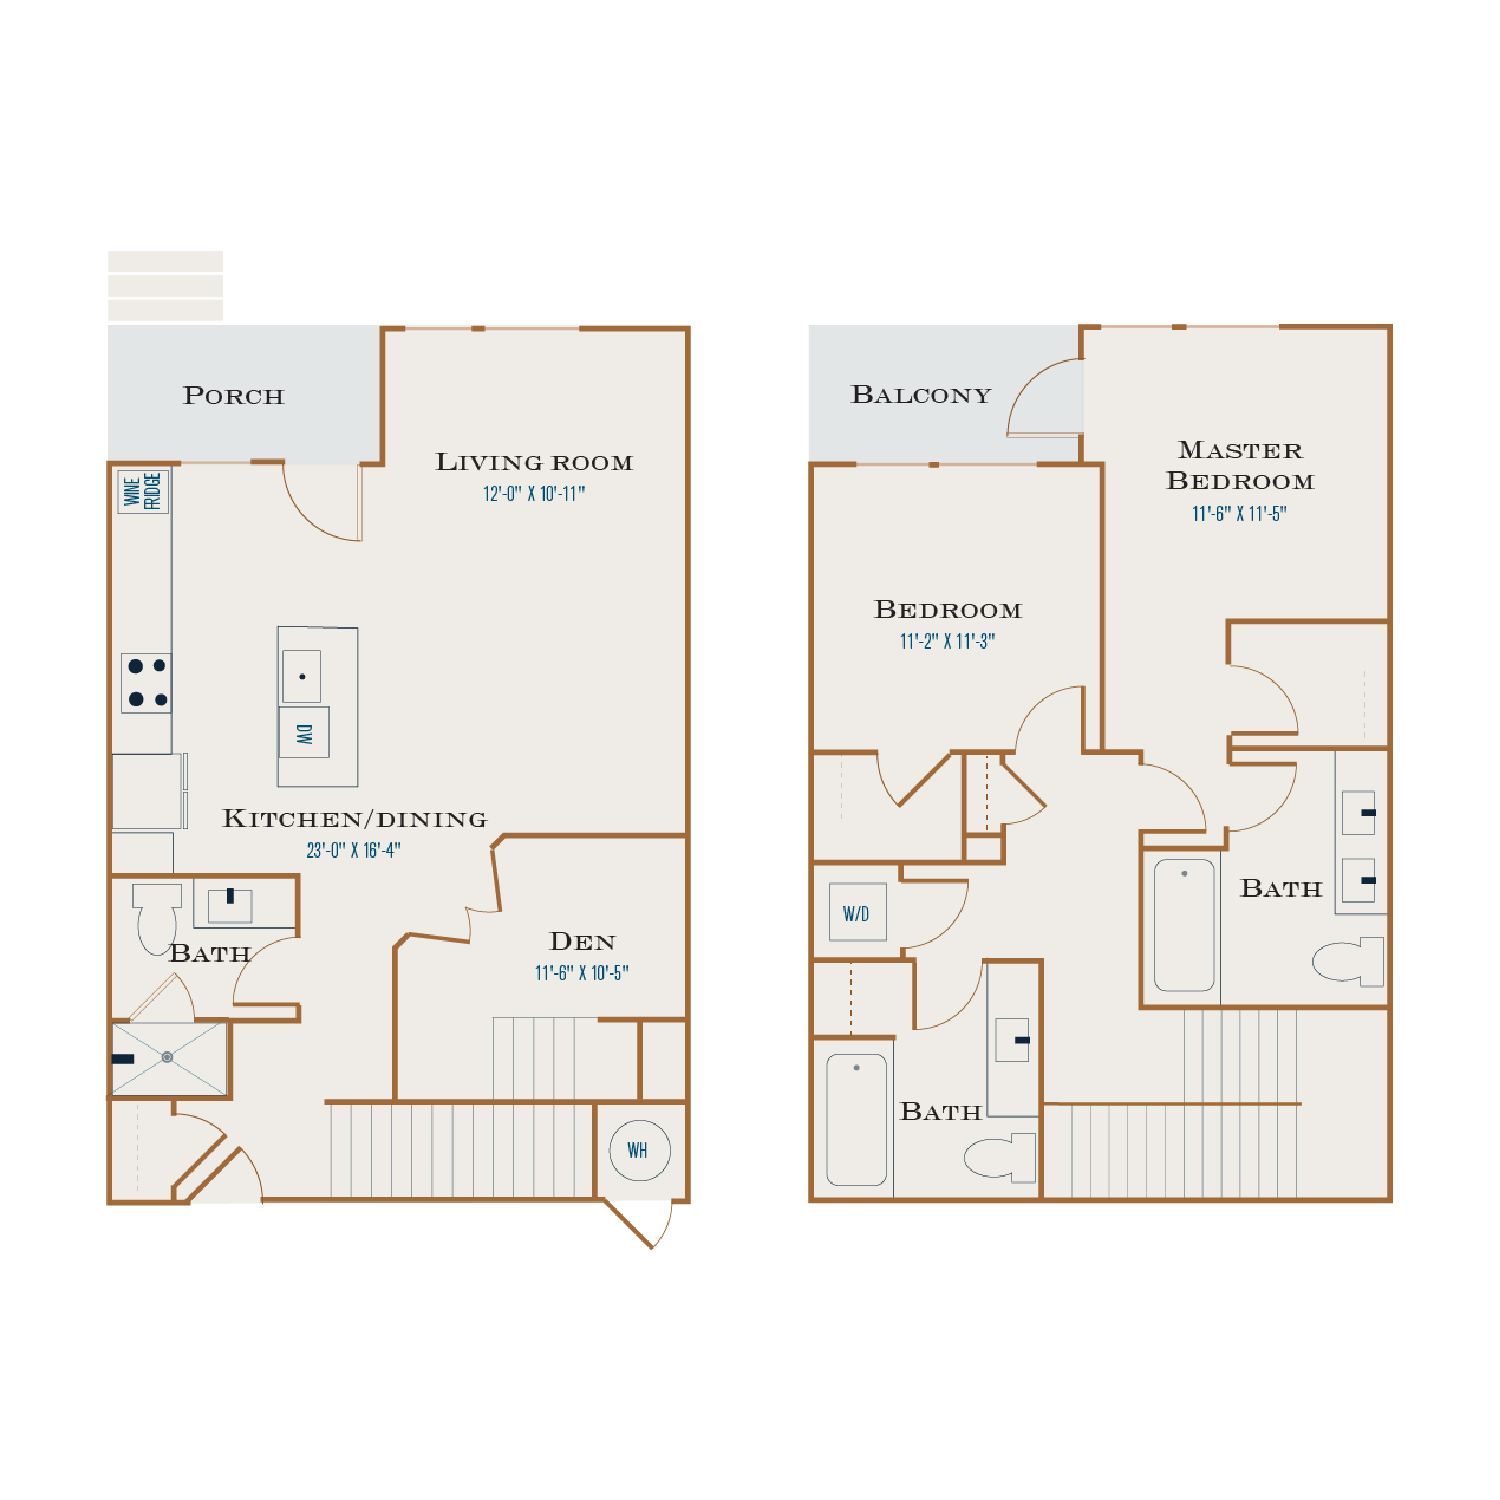 T H floor plan diagram. A two story townhome apartment with two bedrooms, three bathrooms, a den, an open kitchen and living area, a porch, a balcony, and a washer dryer.